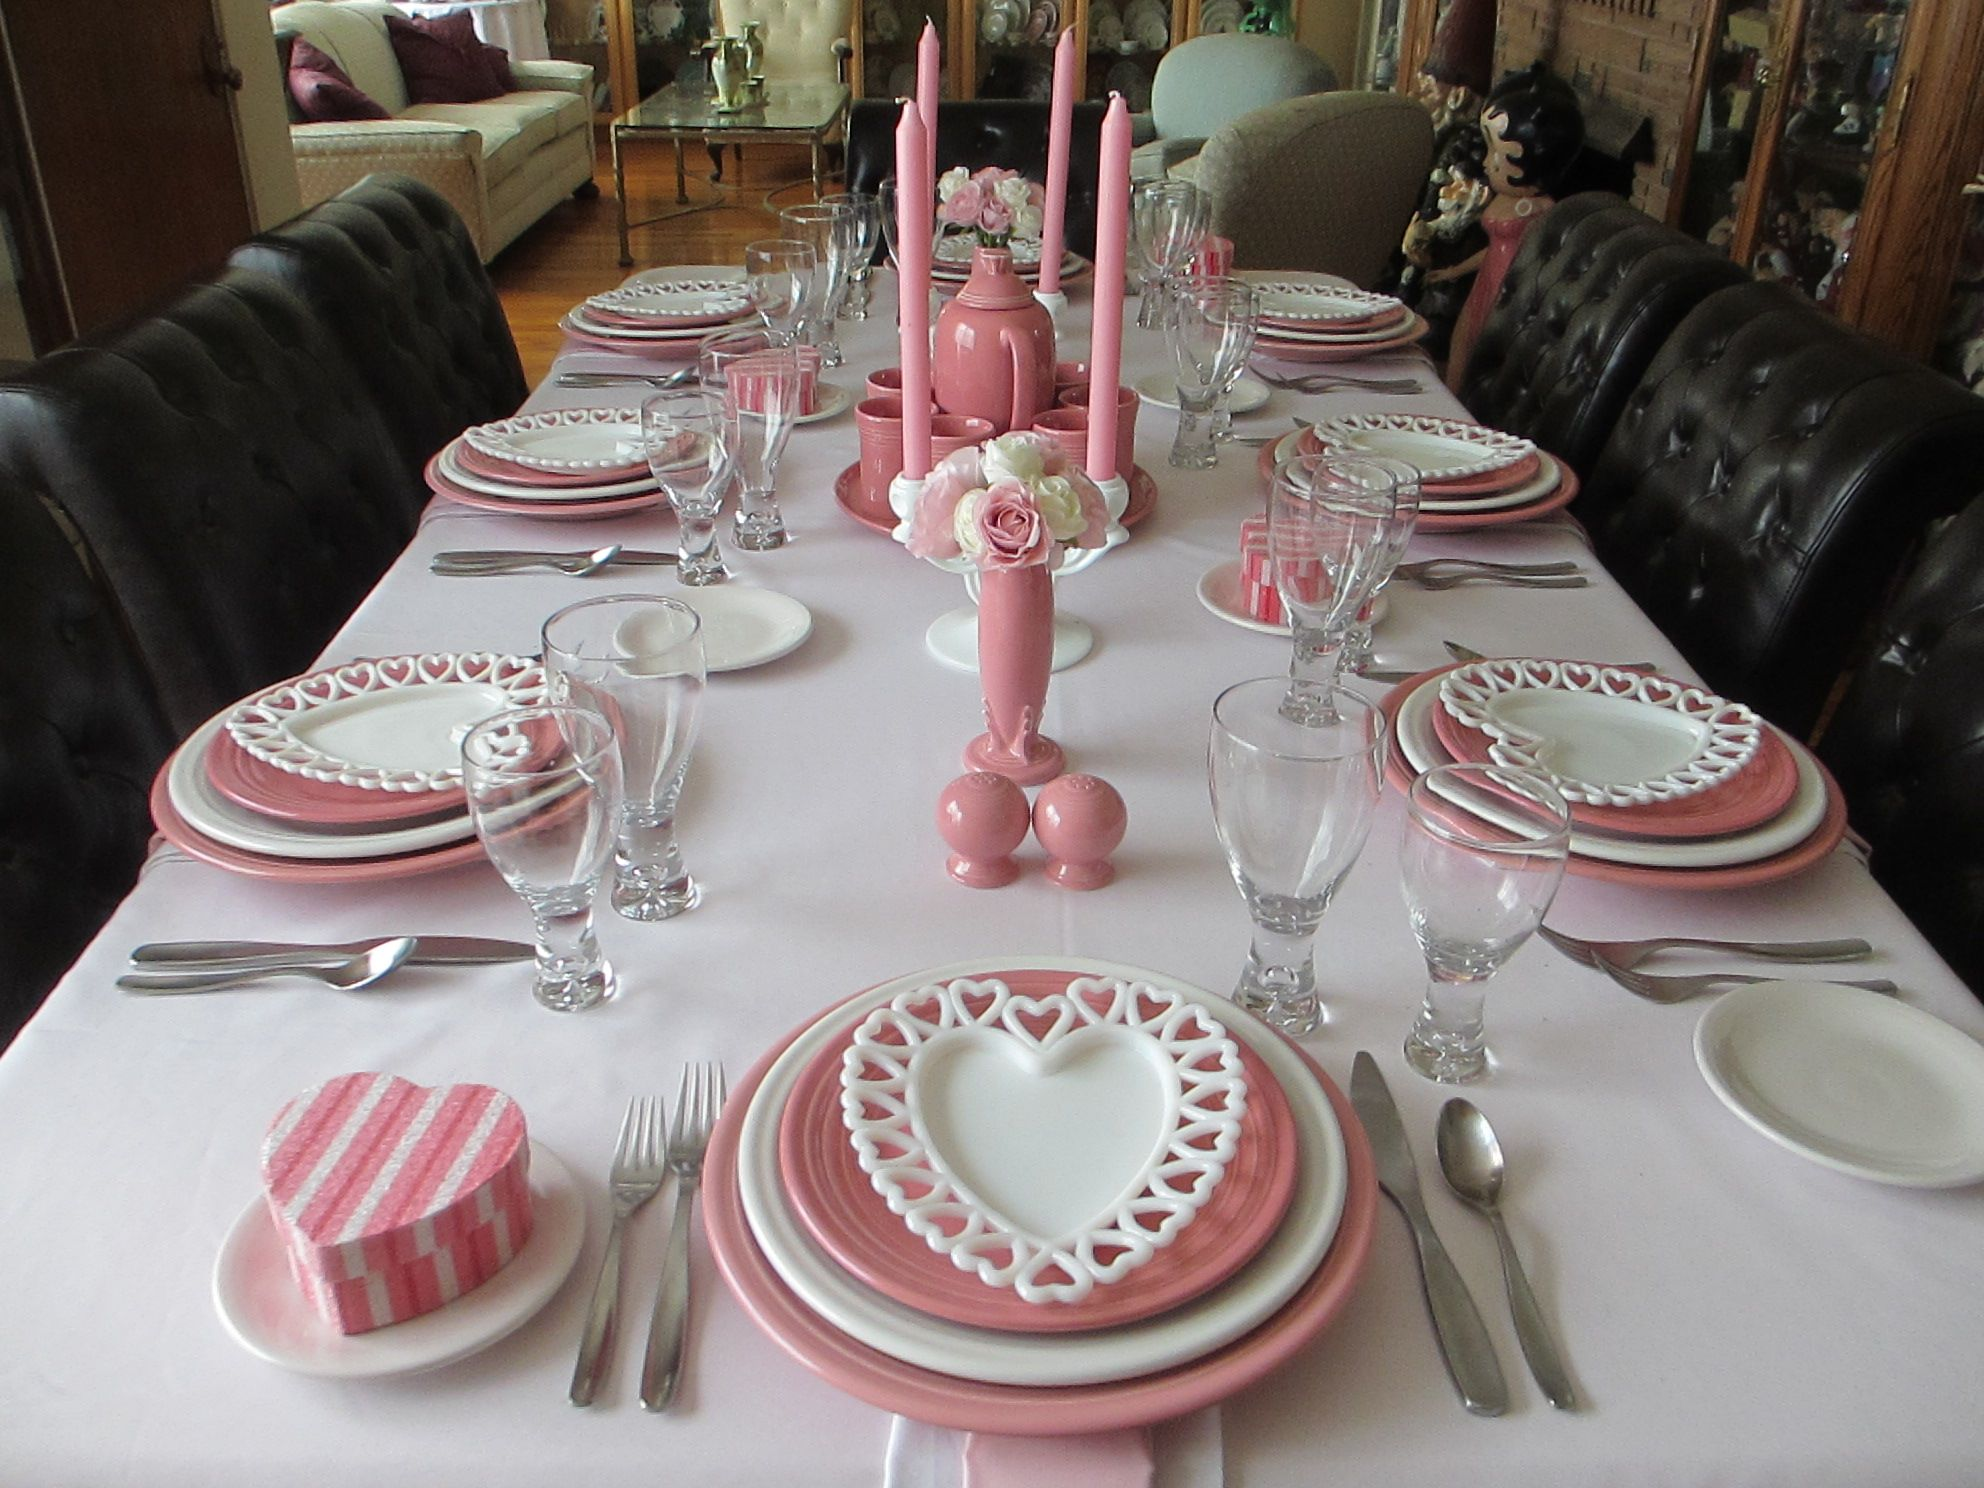 Valentine S Day Table Using Rose And White Fiestaware Valentines Day Tablescapes Rustic Dining Table Decor Table Decorations